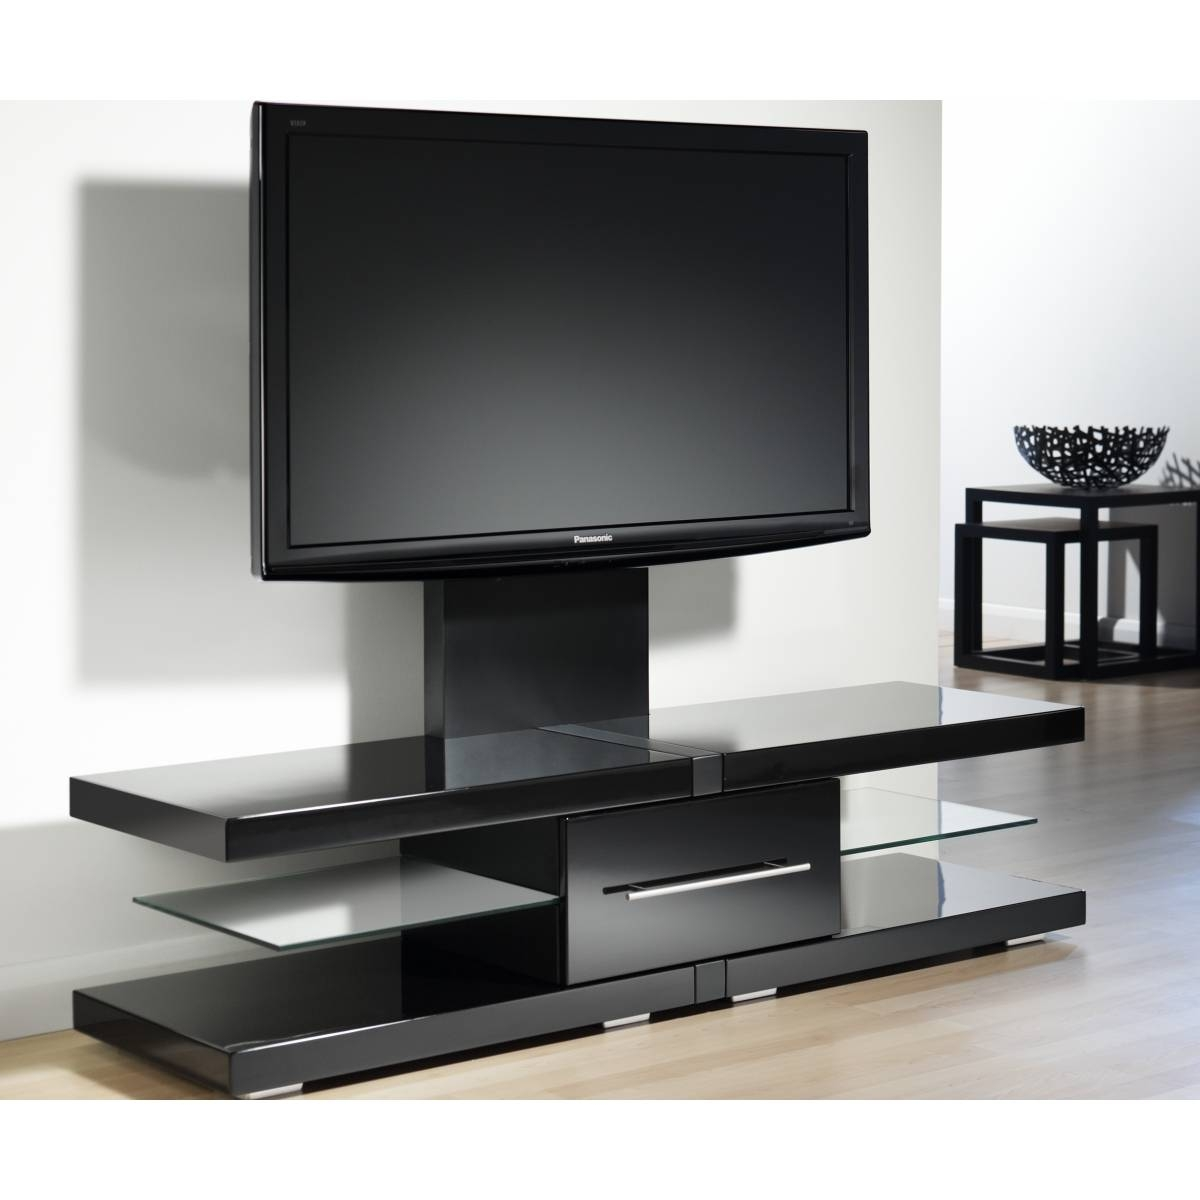 Modern Black Tone Wide Screen Tv Stand With Display Shelves And in Modern Tv Stands for Flat Screens (Image 6 of 15)